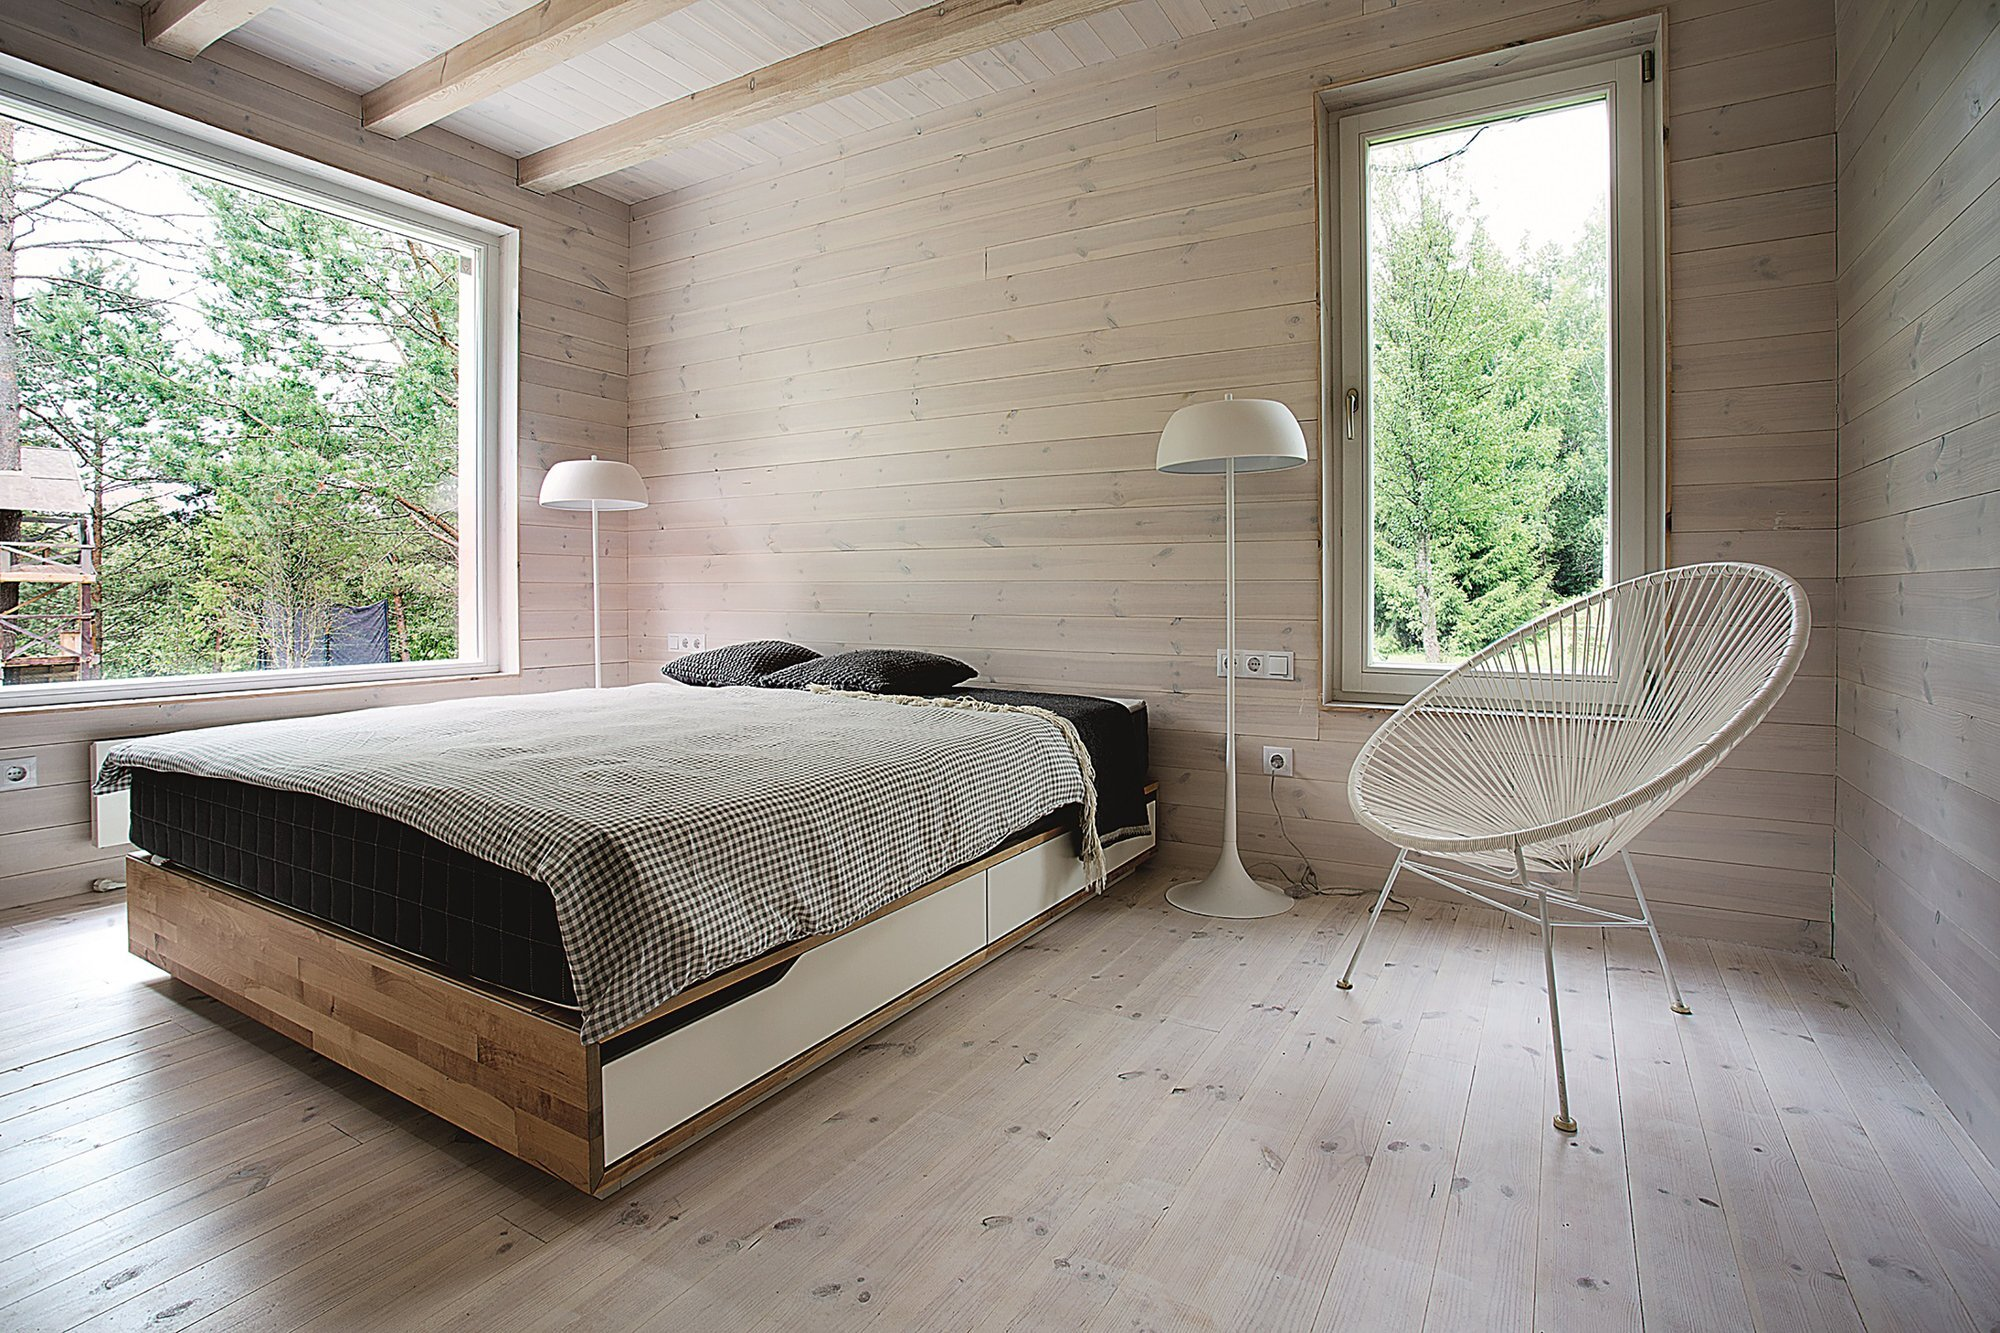 Lithuanian Hunting House - Devyni architektai - Lithuania - Bedroom- Humble Homes